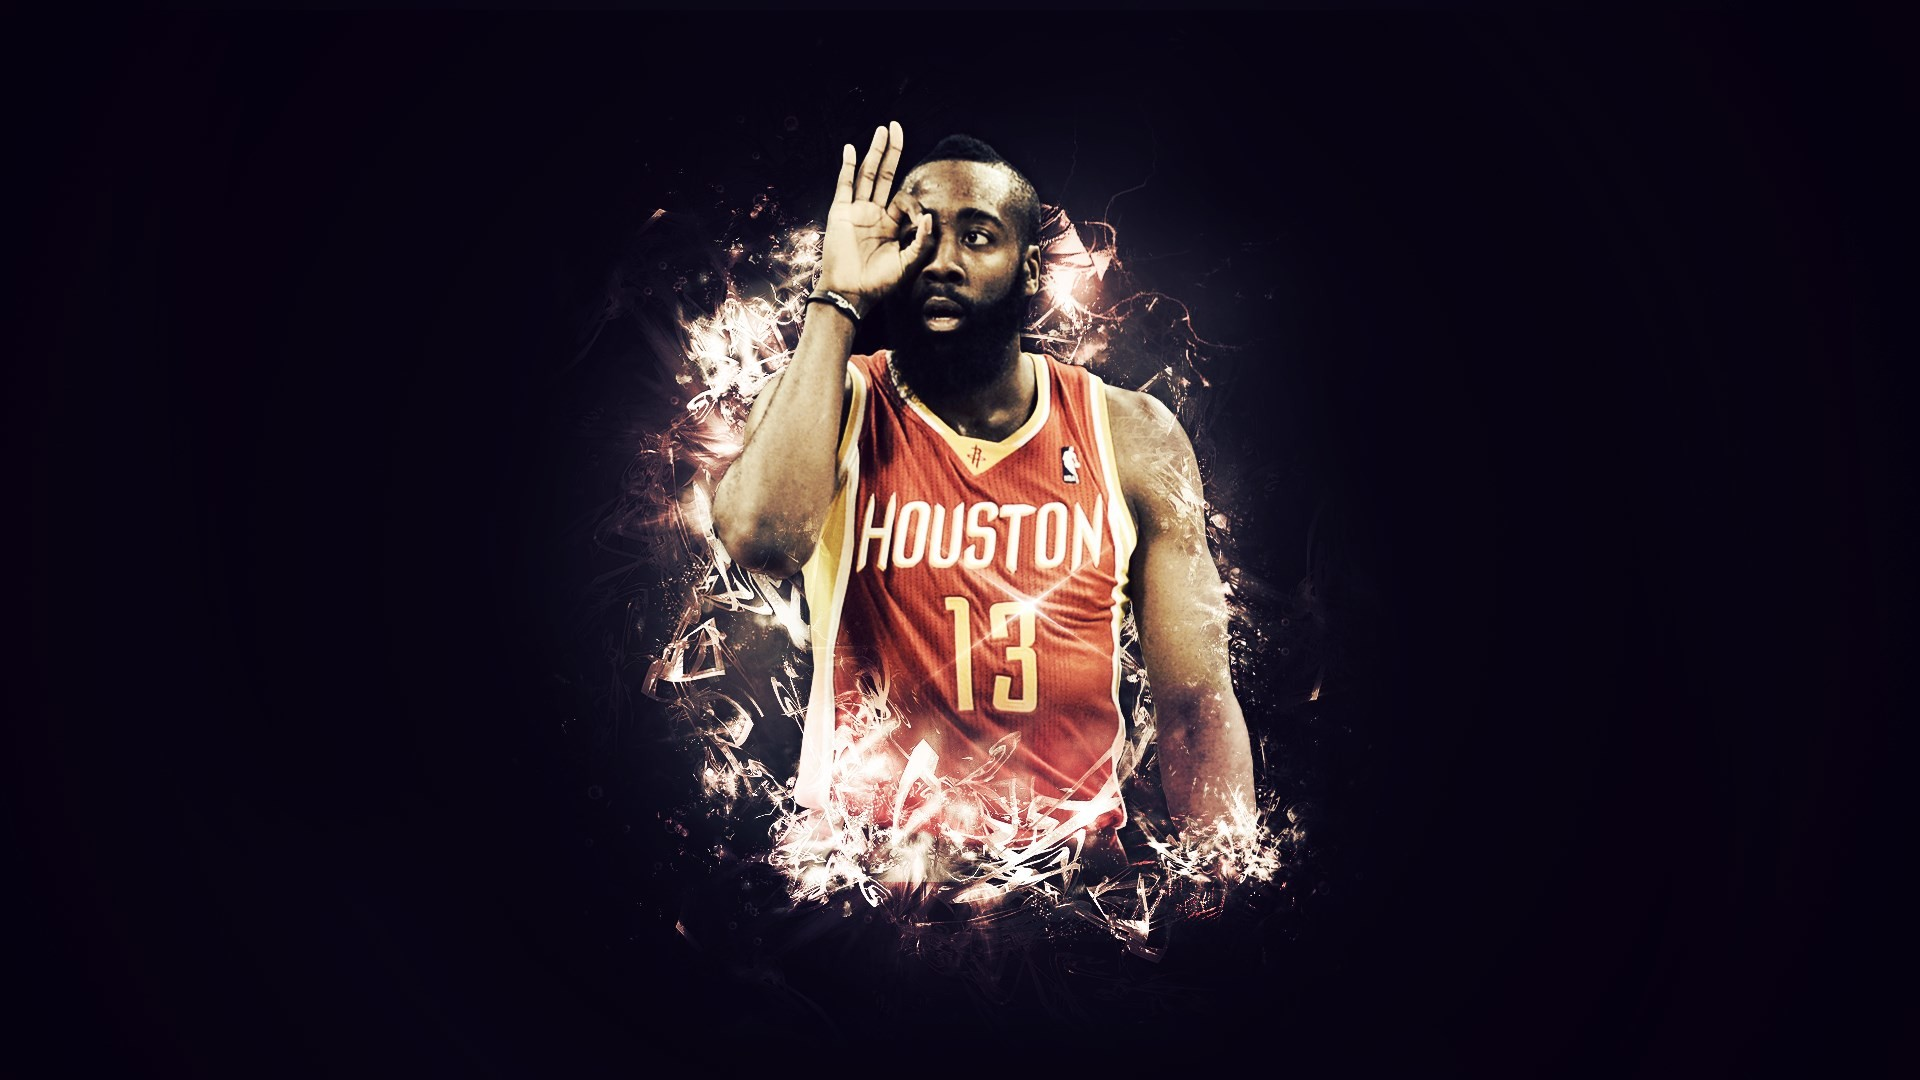 … james harden wallpaper full size 2048×1365 1025 kb by hayley …